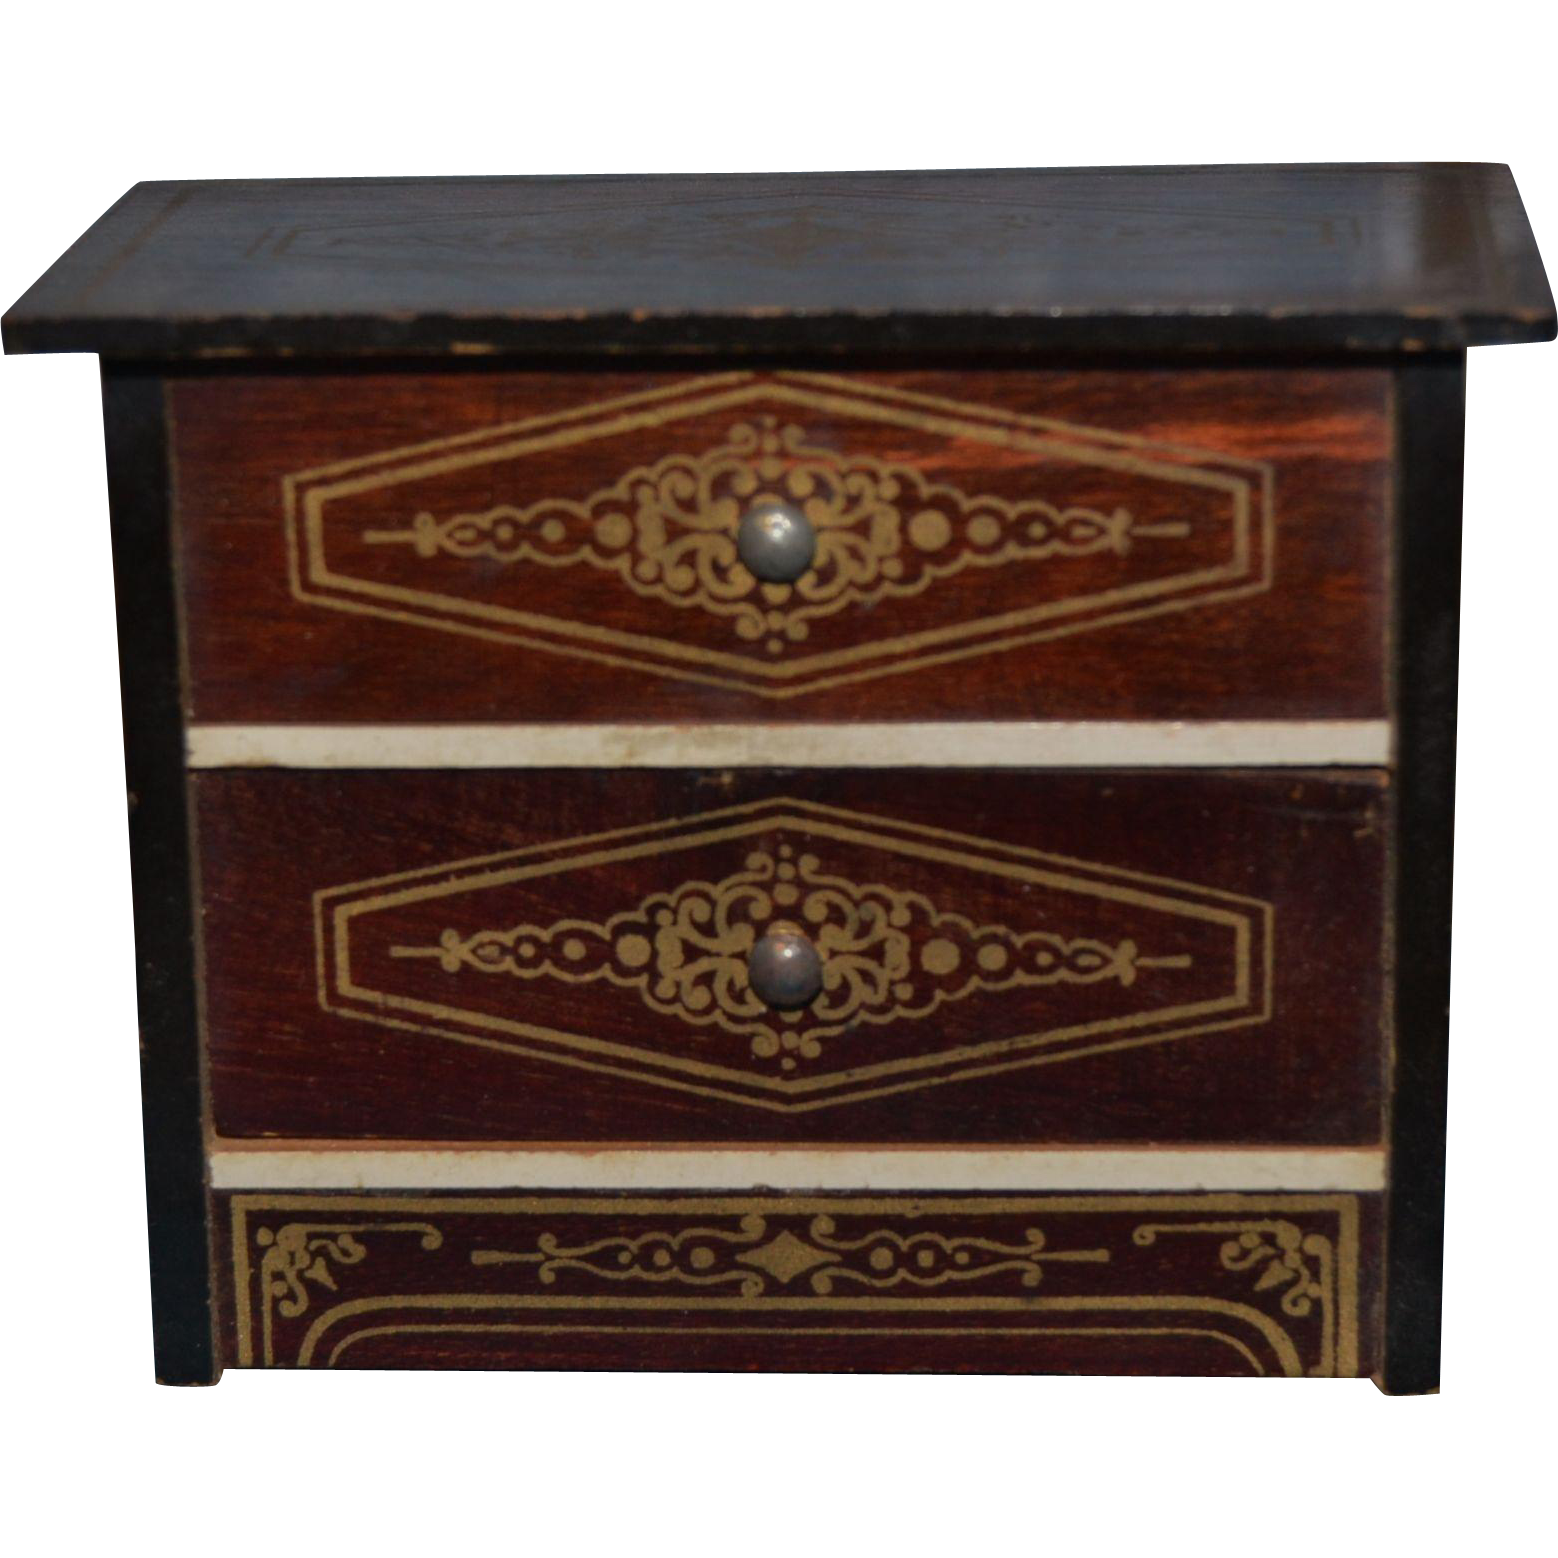 Charming small scale chest for your doll's house